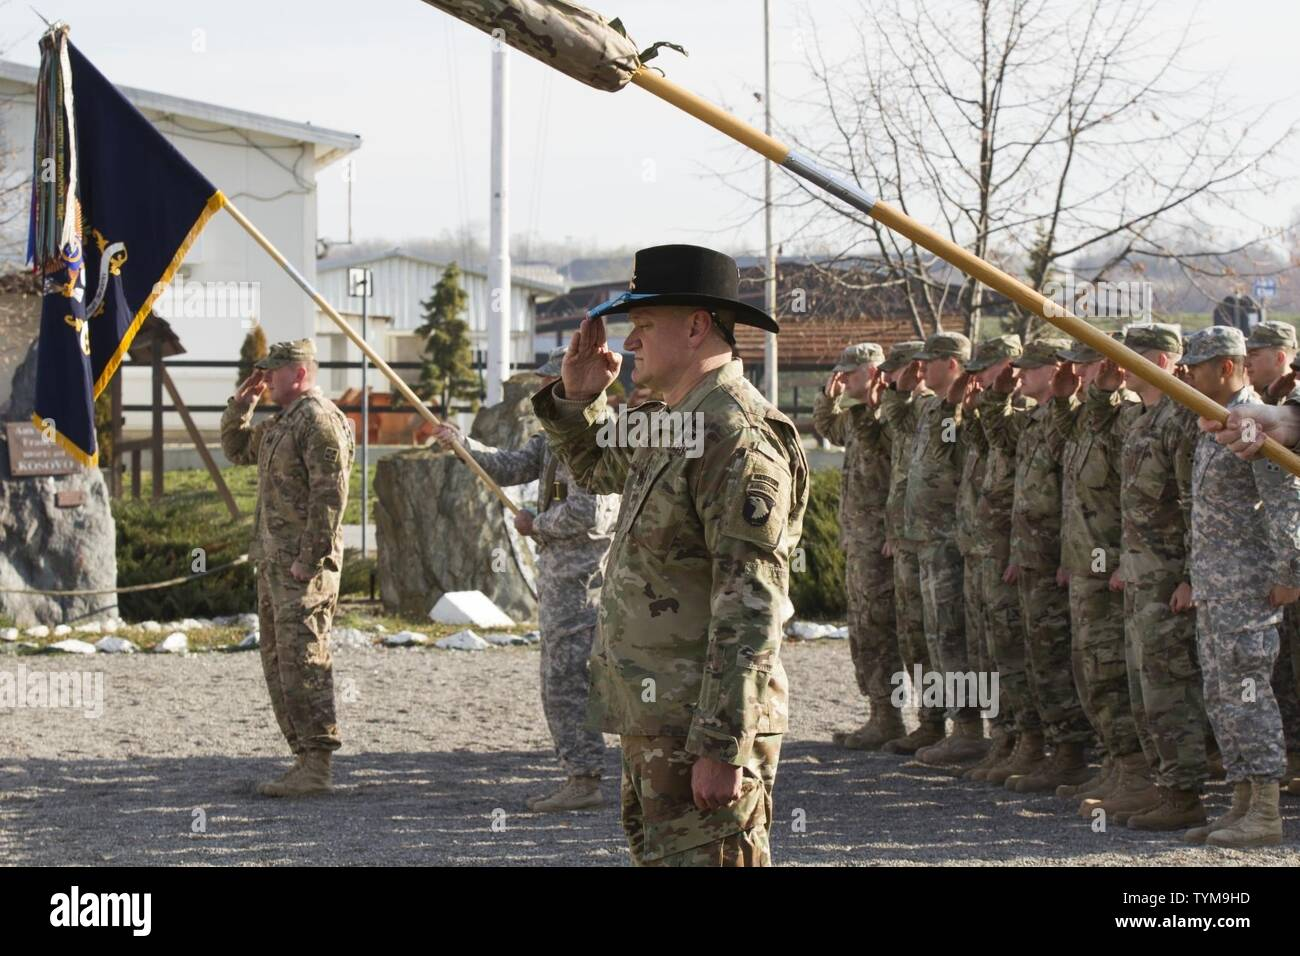 1 33 Cav High Resolution Stock Photography And Images Alamy